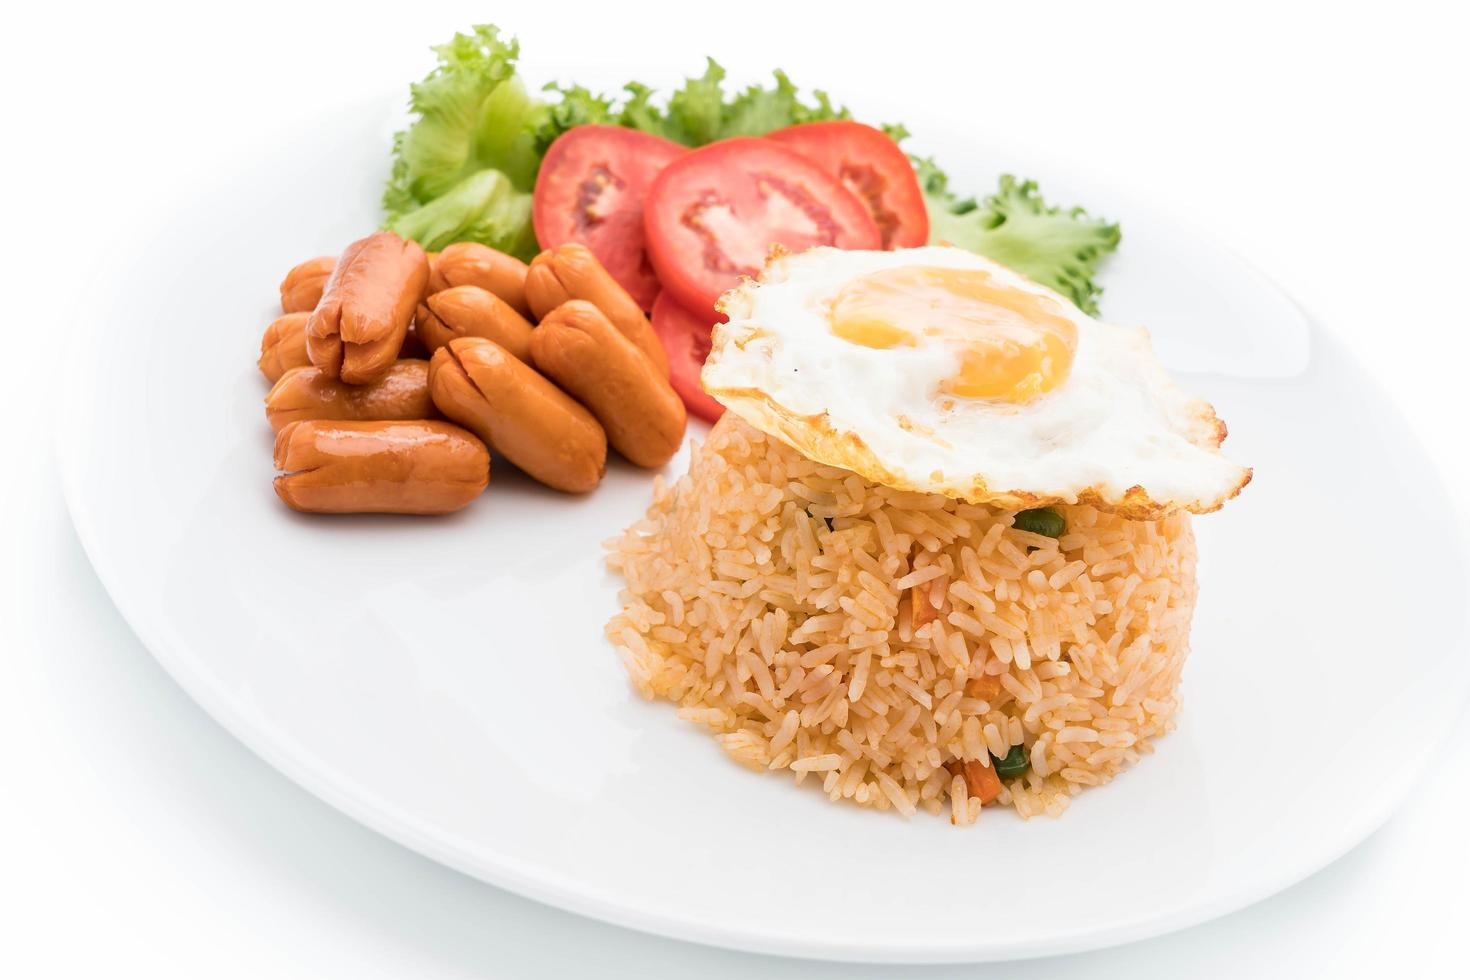 Plate with fried rice and egg with sausage and sides photo